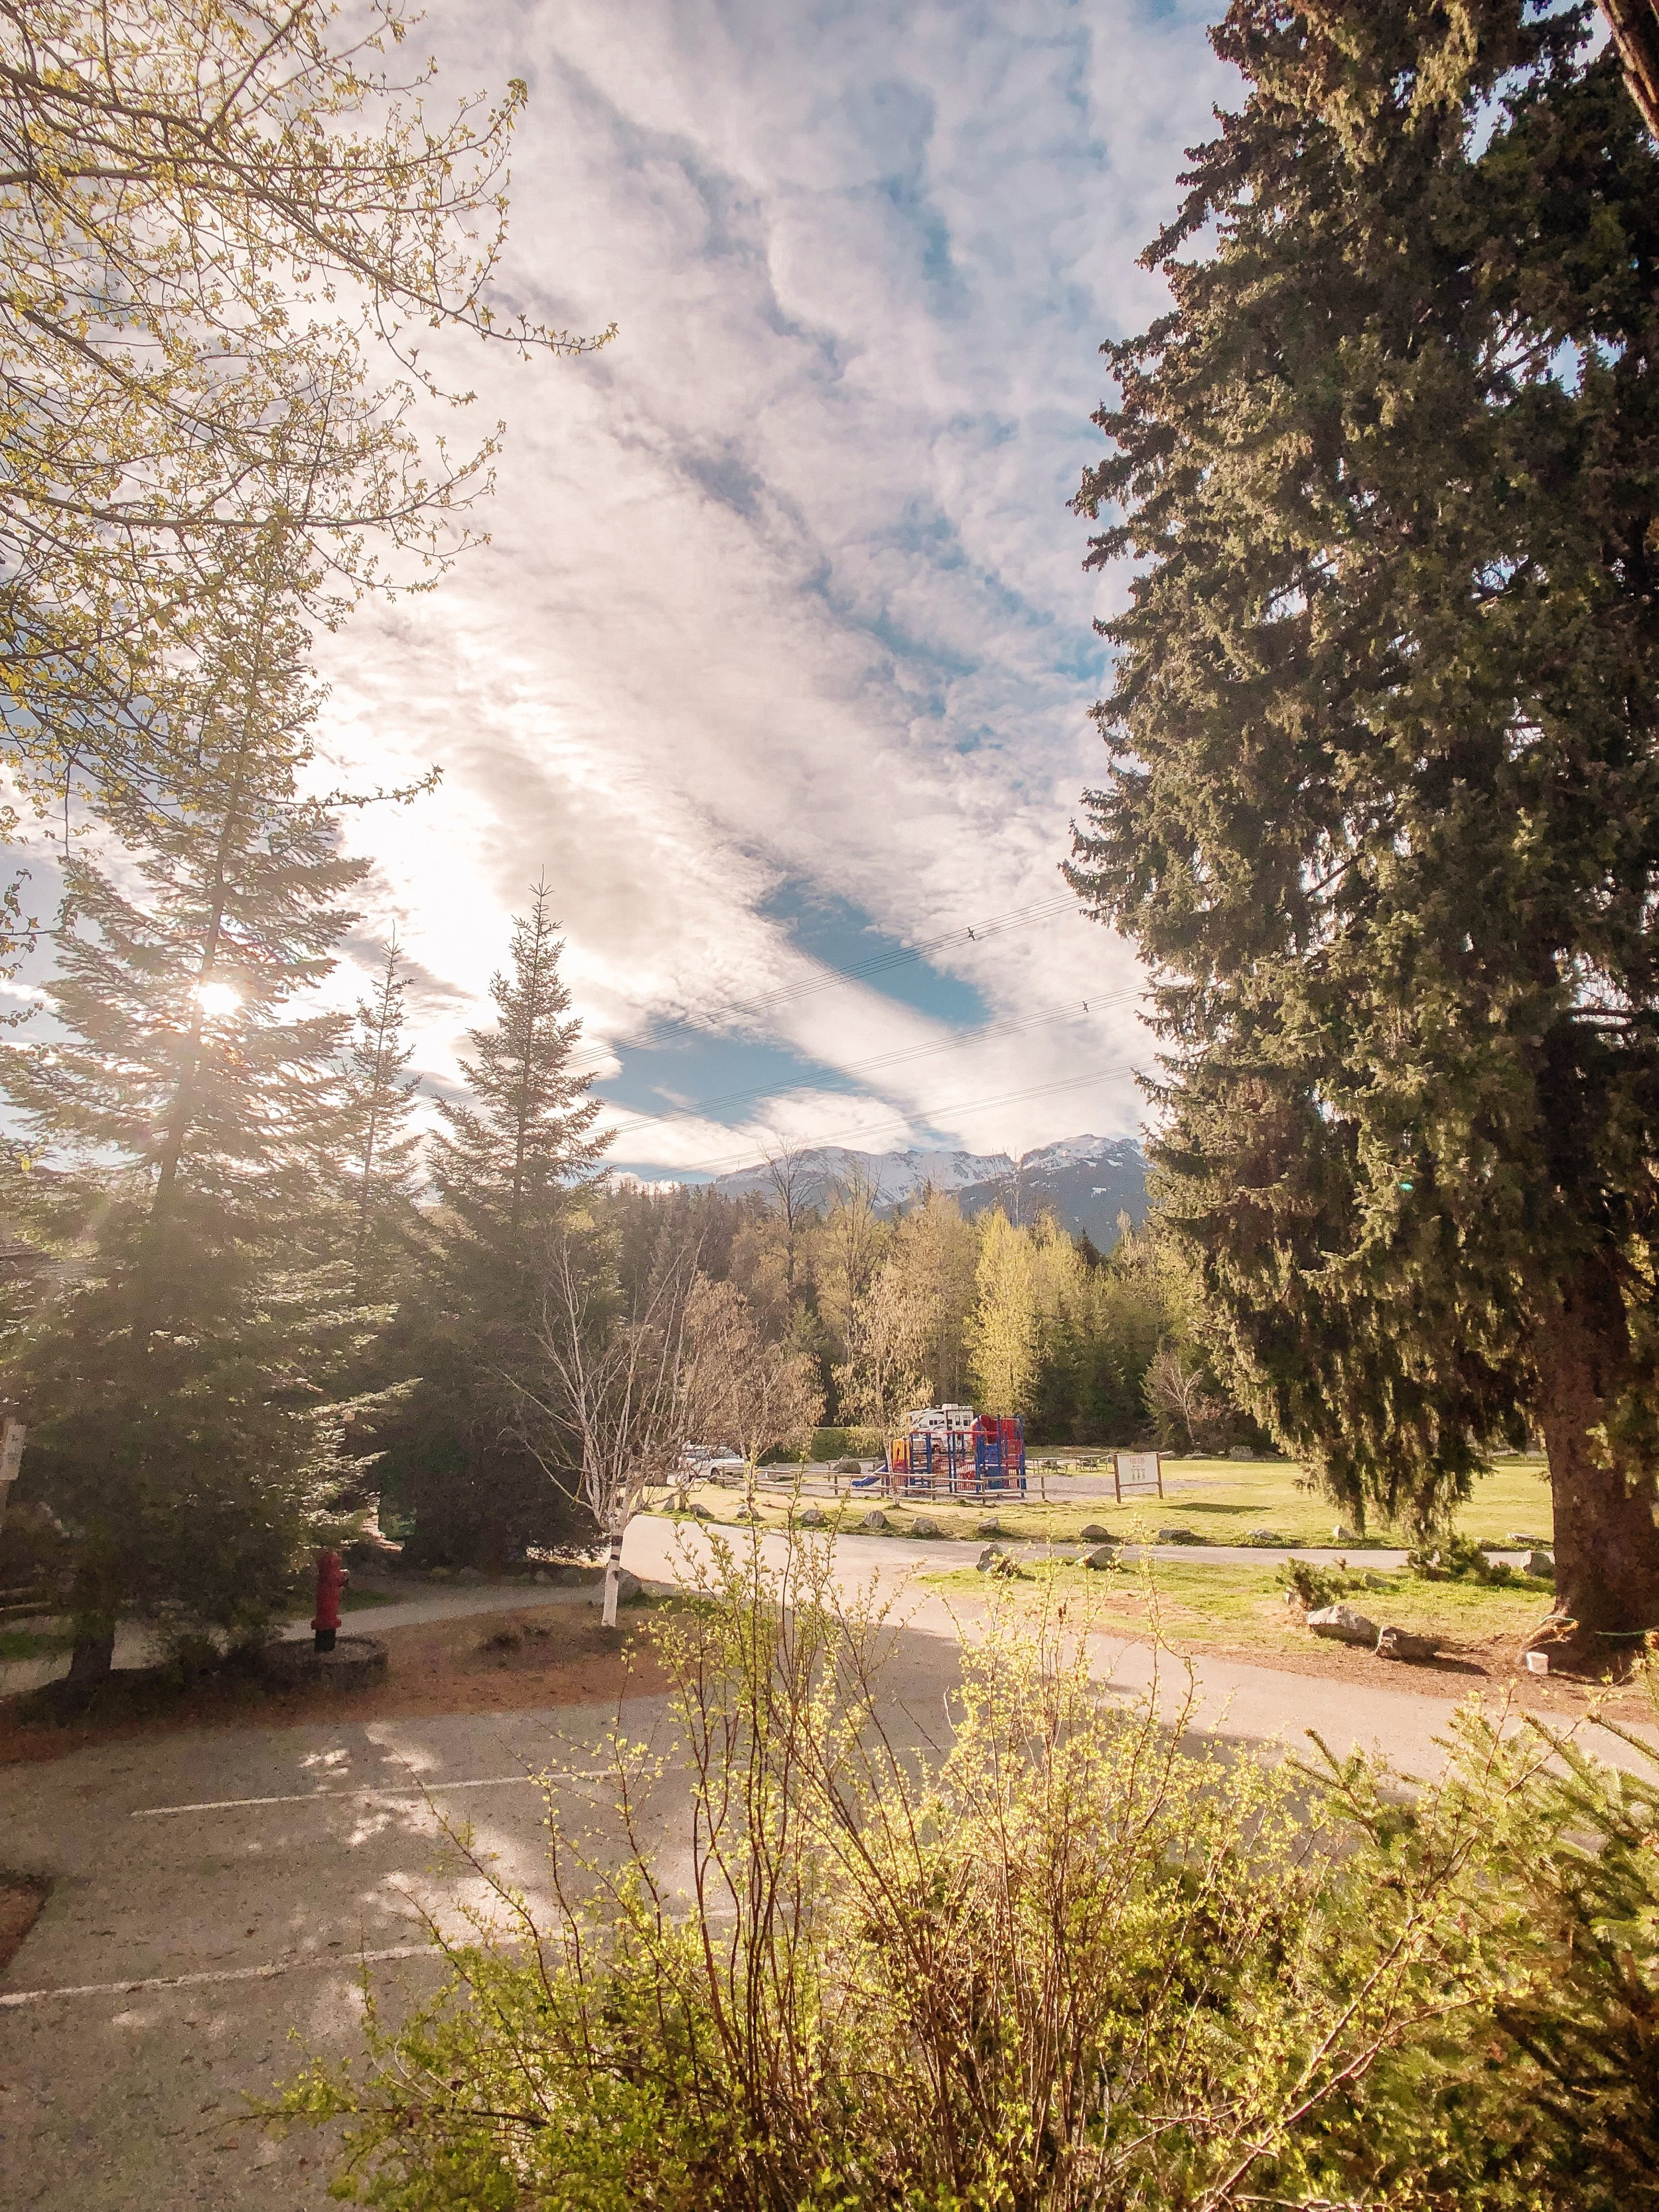 Awesome activities and fun things to do for kids in Whistler Canada campground